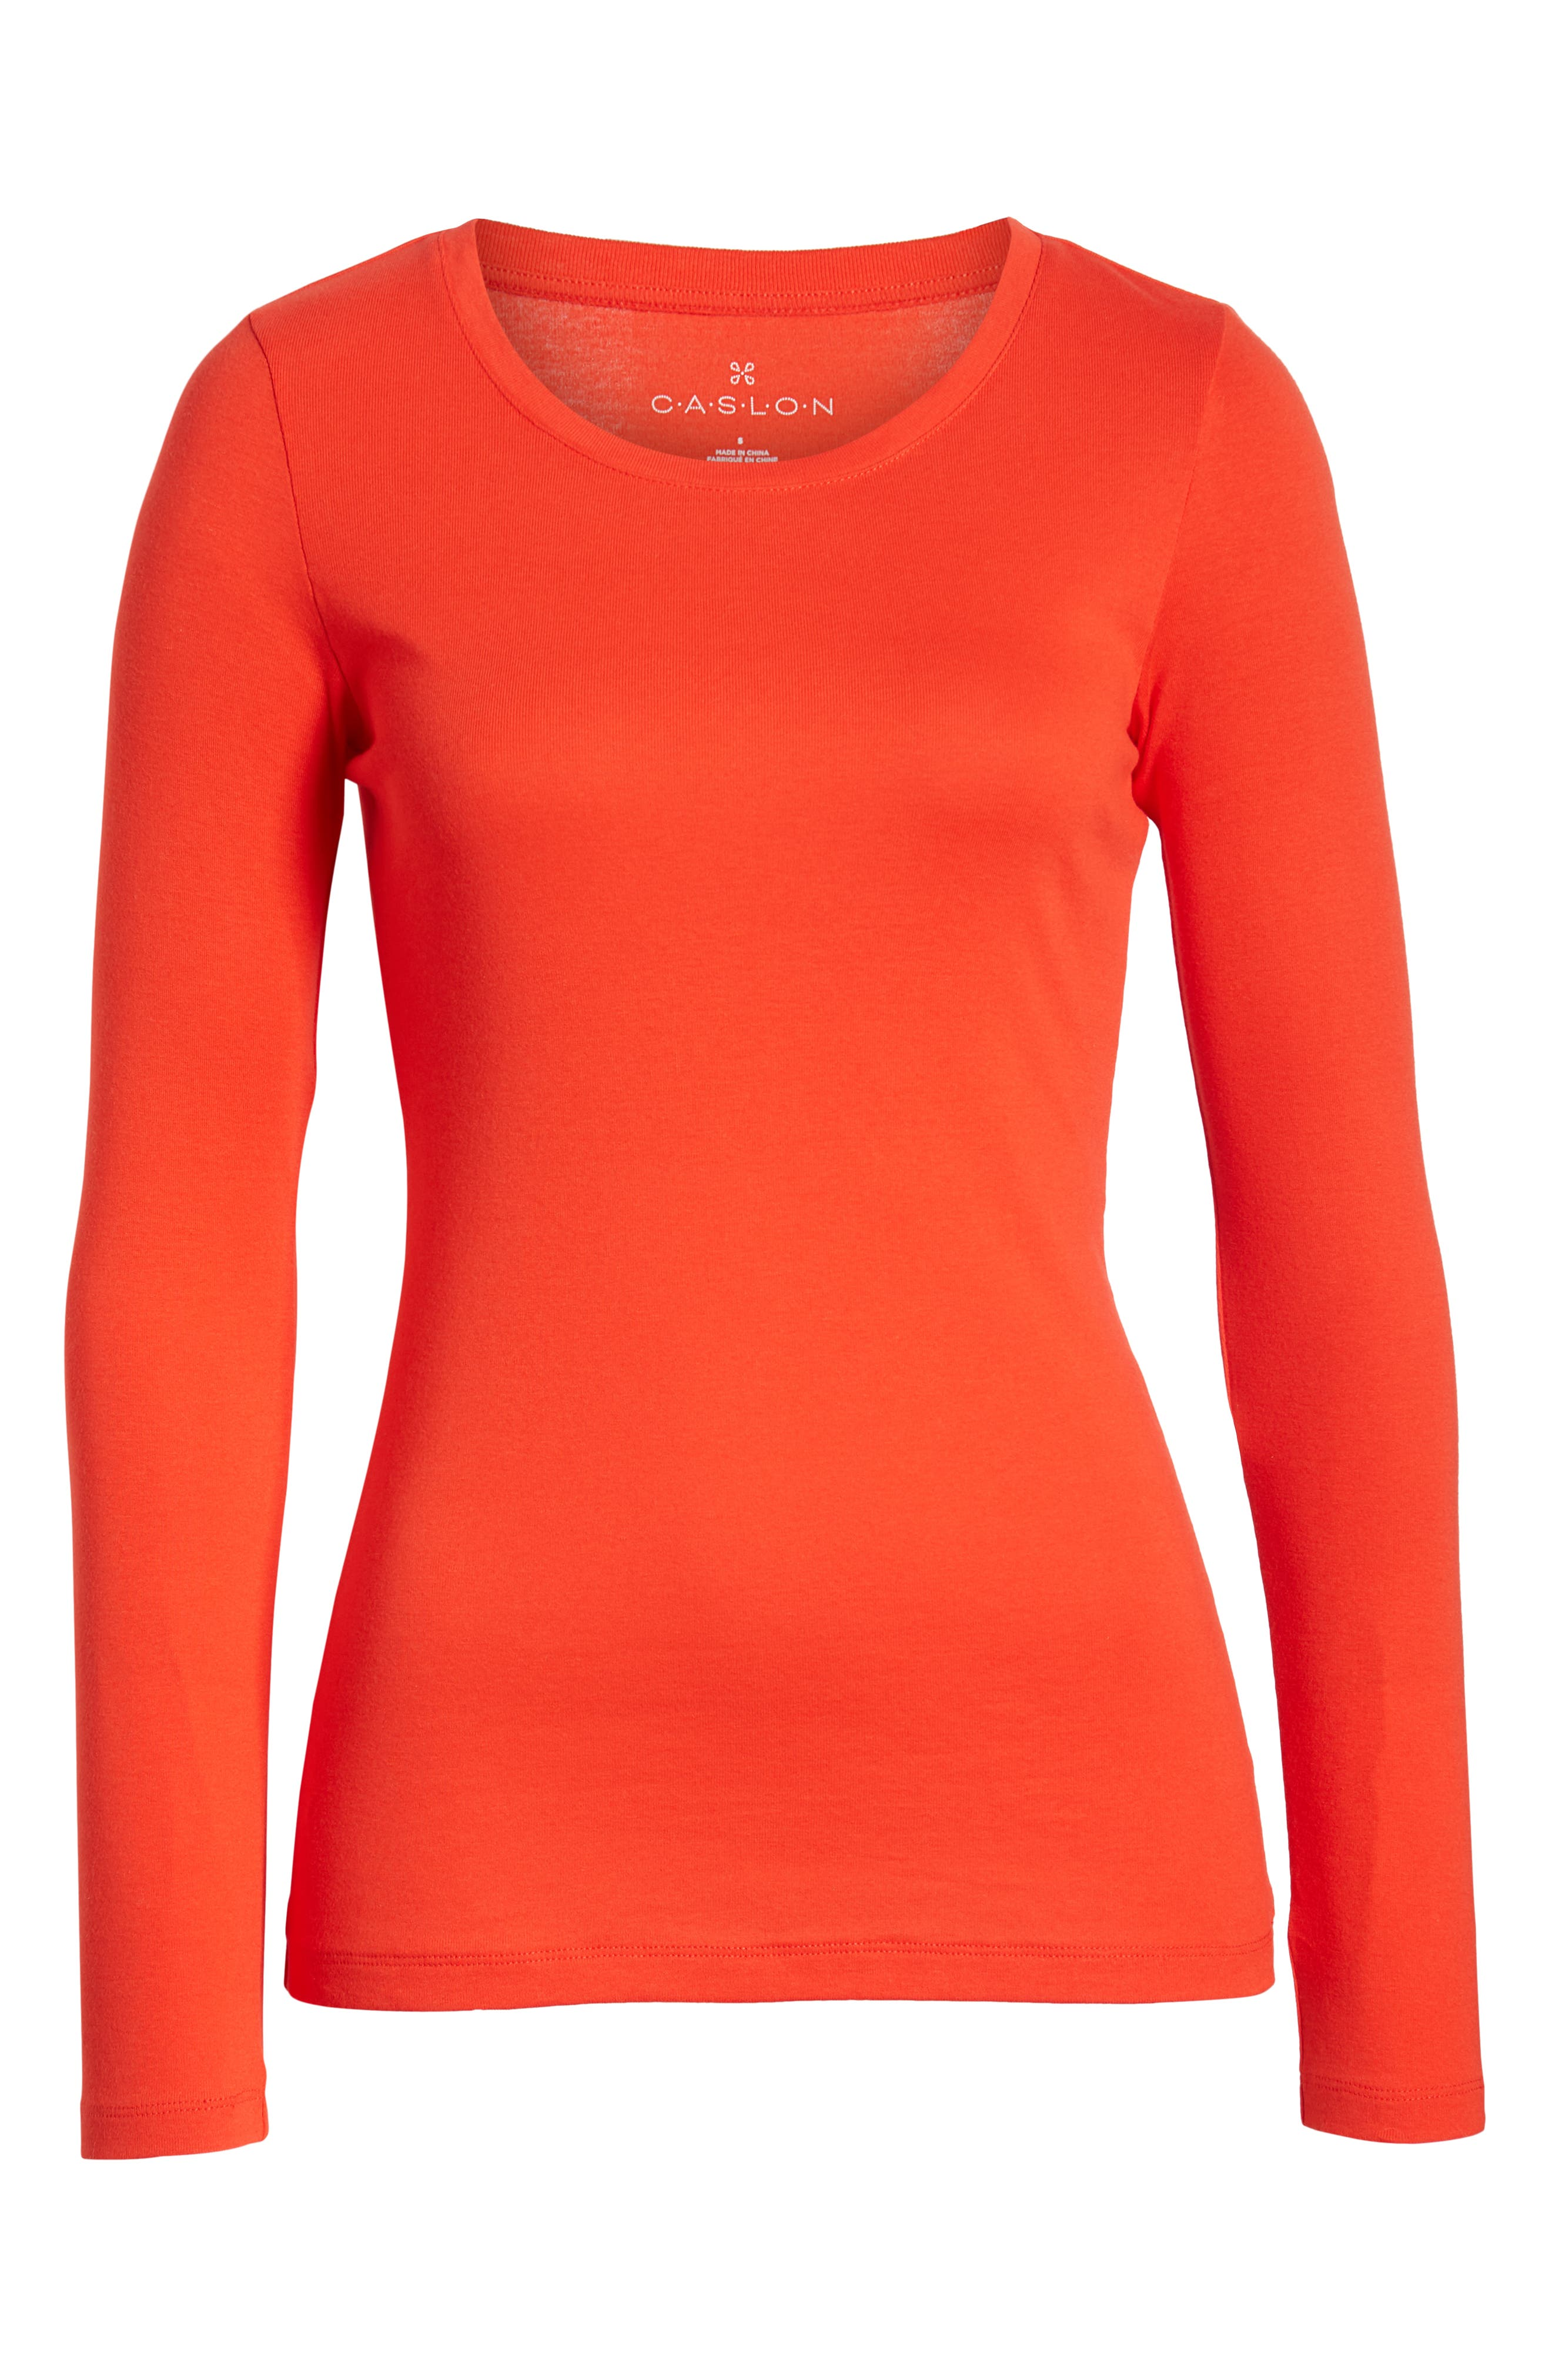 CASLON<SUP>®</SUP>, Long Sleeve Scoop Neck Cotton Tee, Alternate thumbnail 7, color, RED SCARLET